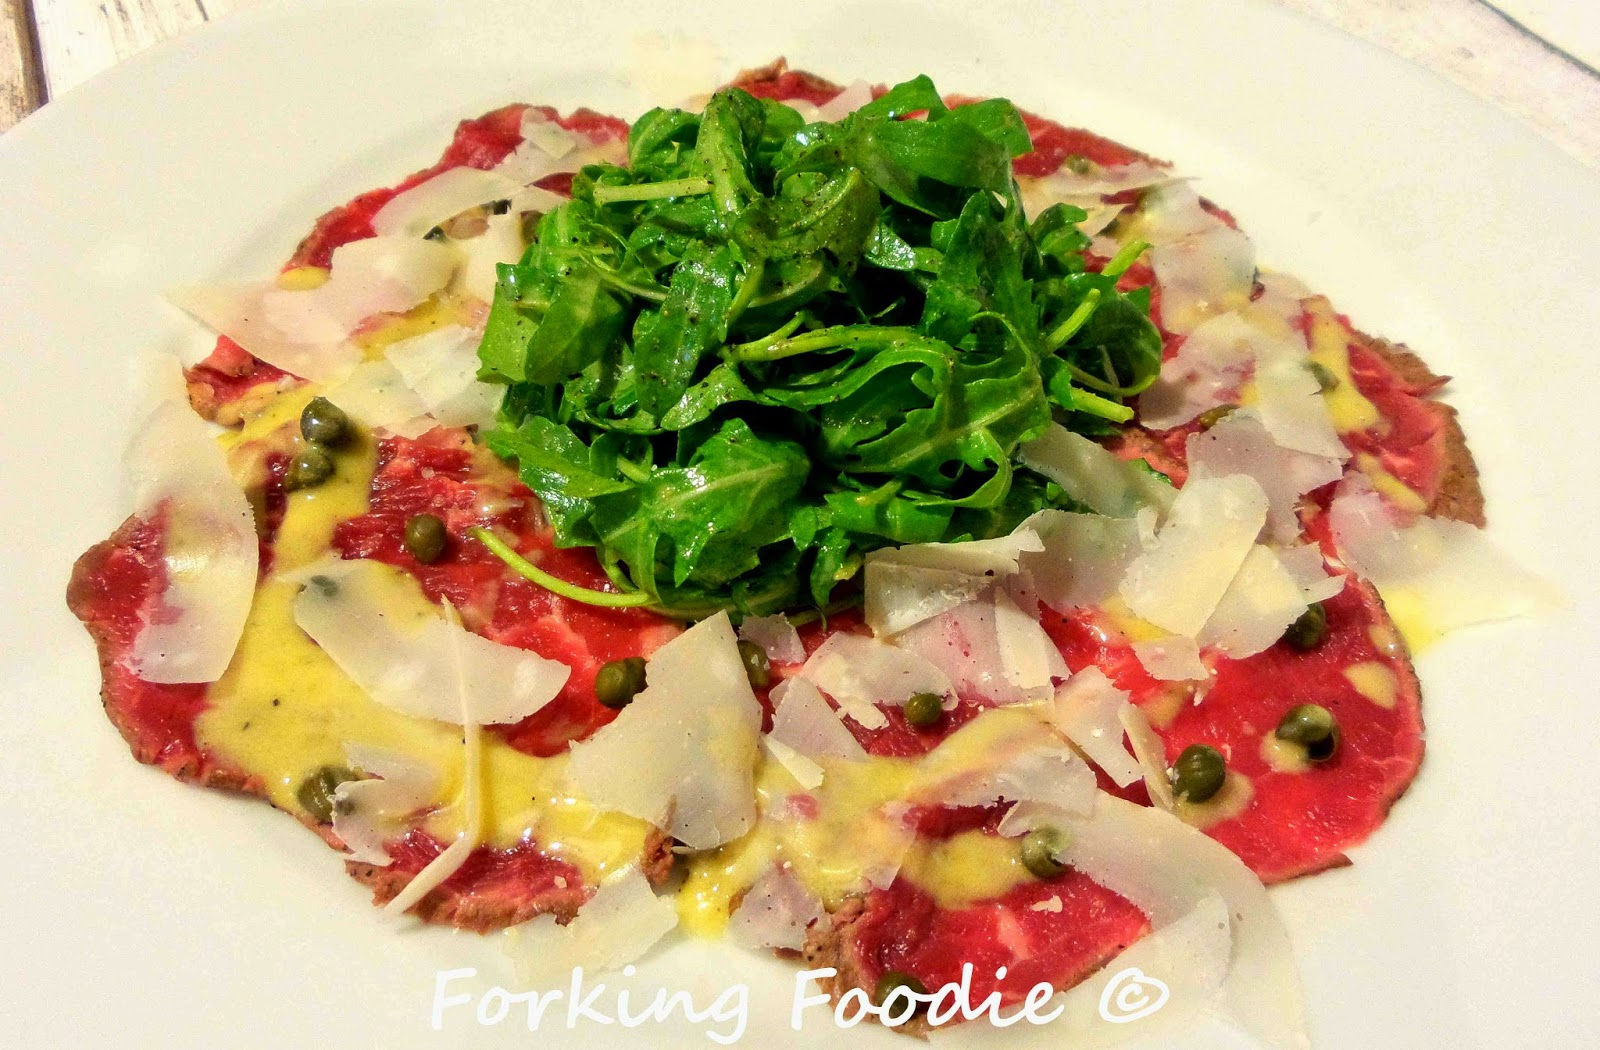 Carpaccio of beef recipe